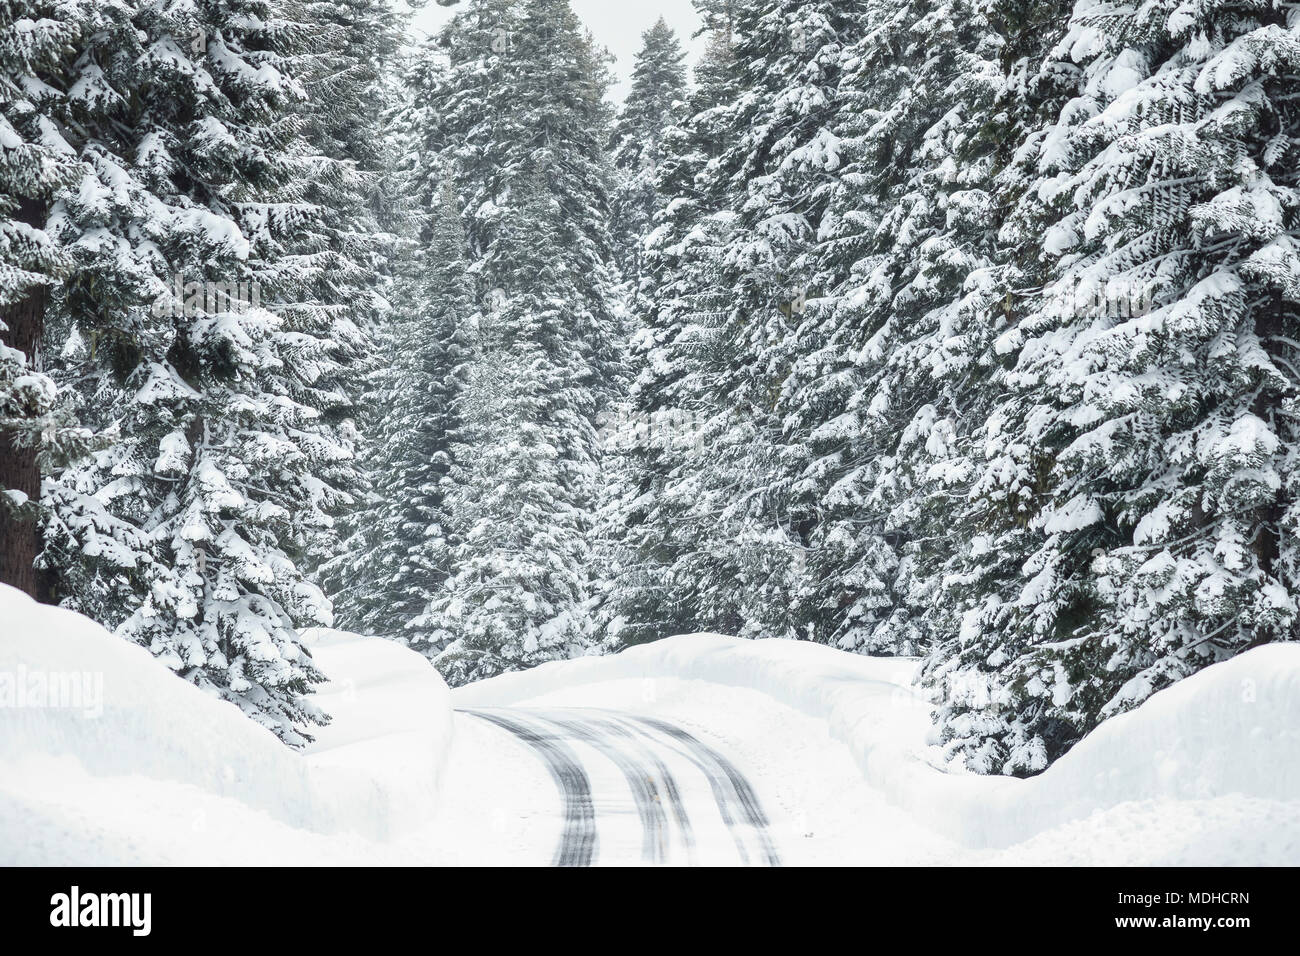 Snowy road with icy conditions in the mountains; Keno, Oregon, United States of America - Stock Image